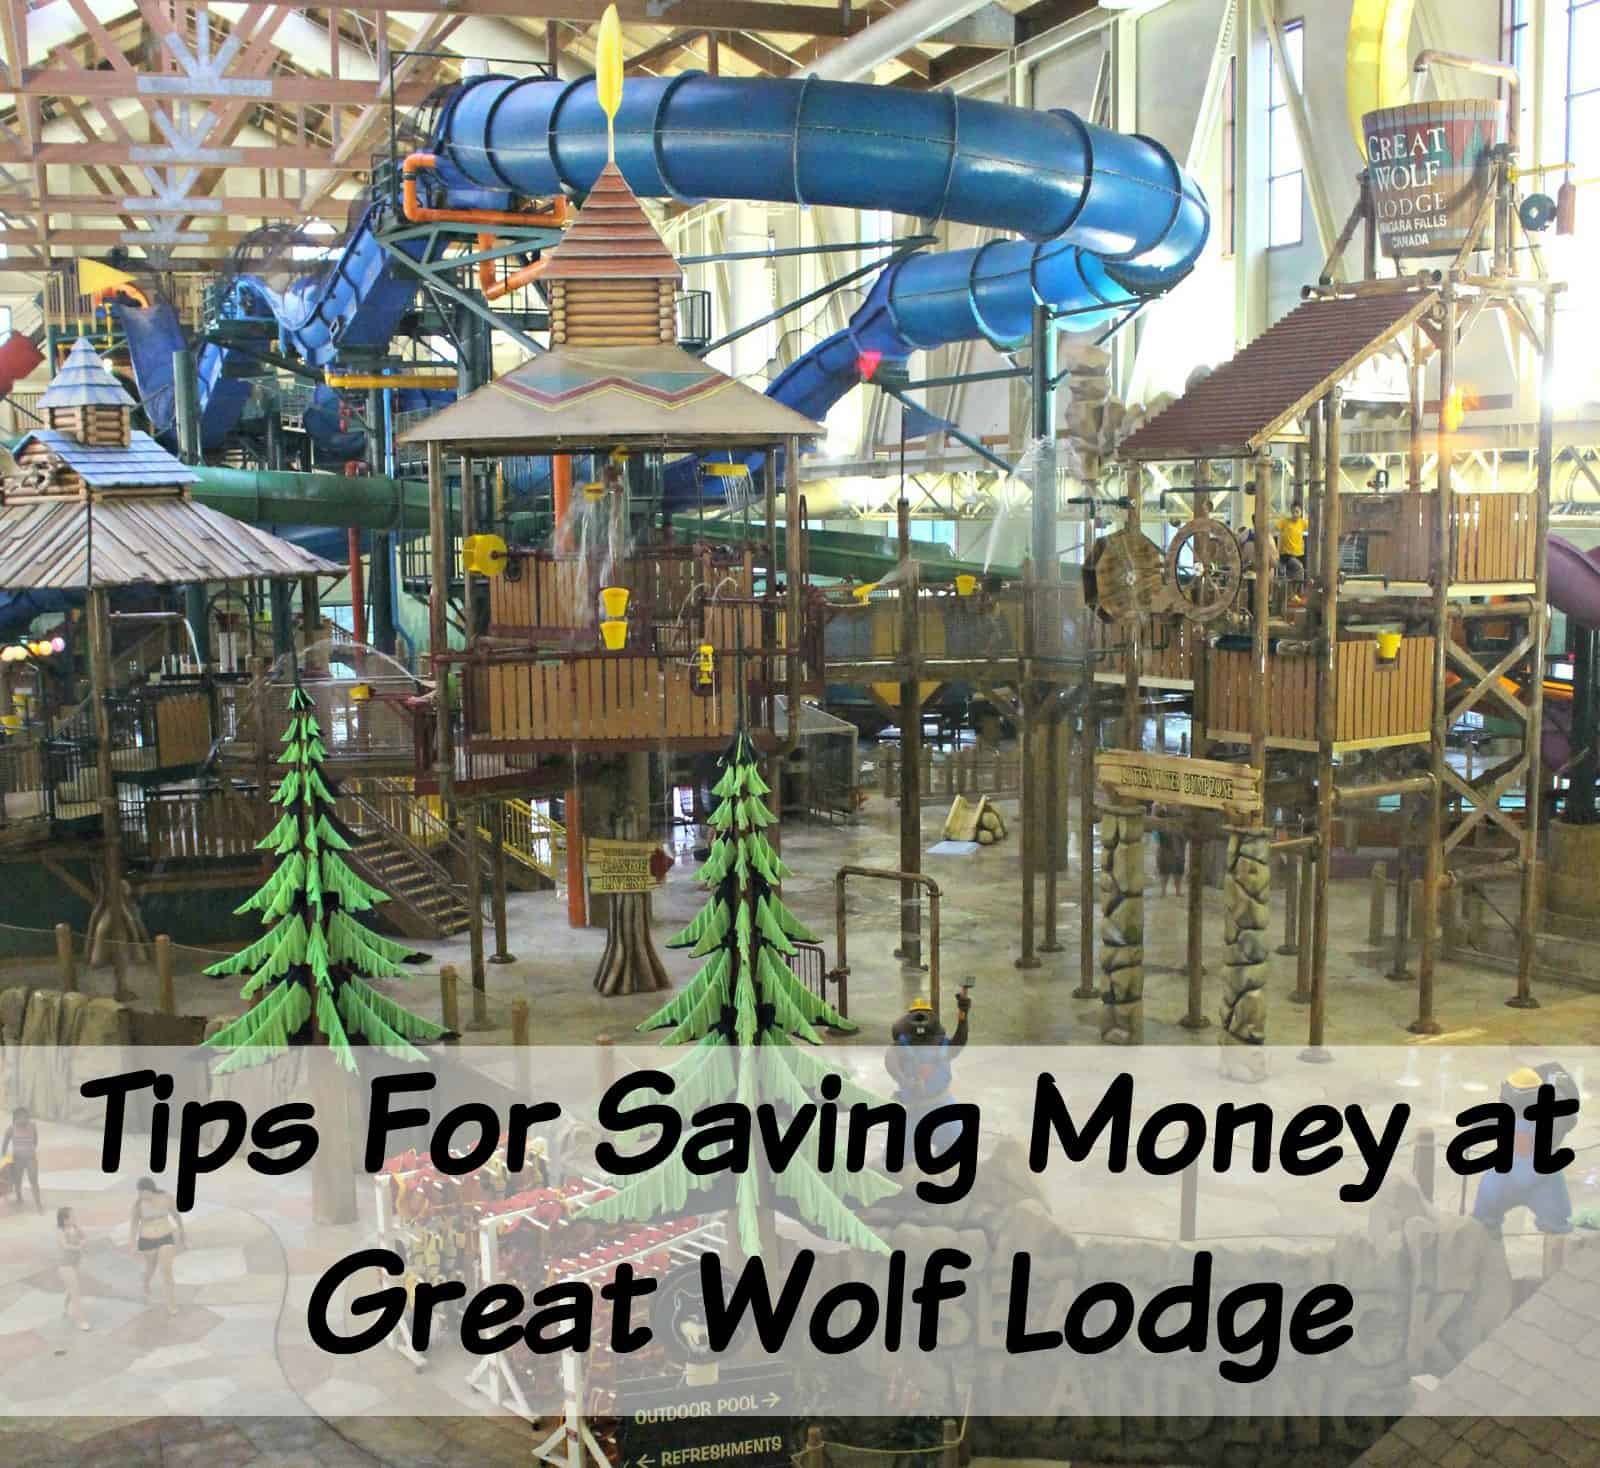 Tips for Saving Money at Great Wolf Lodge and DISCOUNT CODE